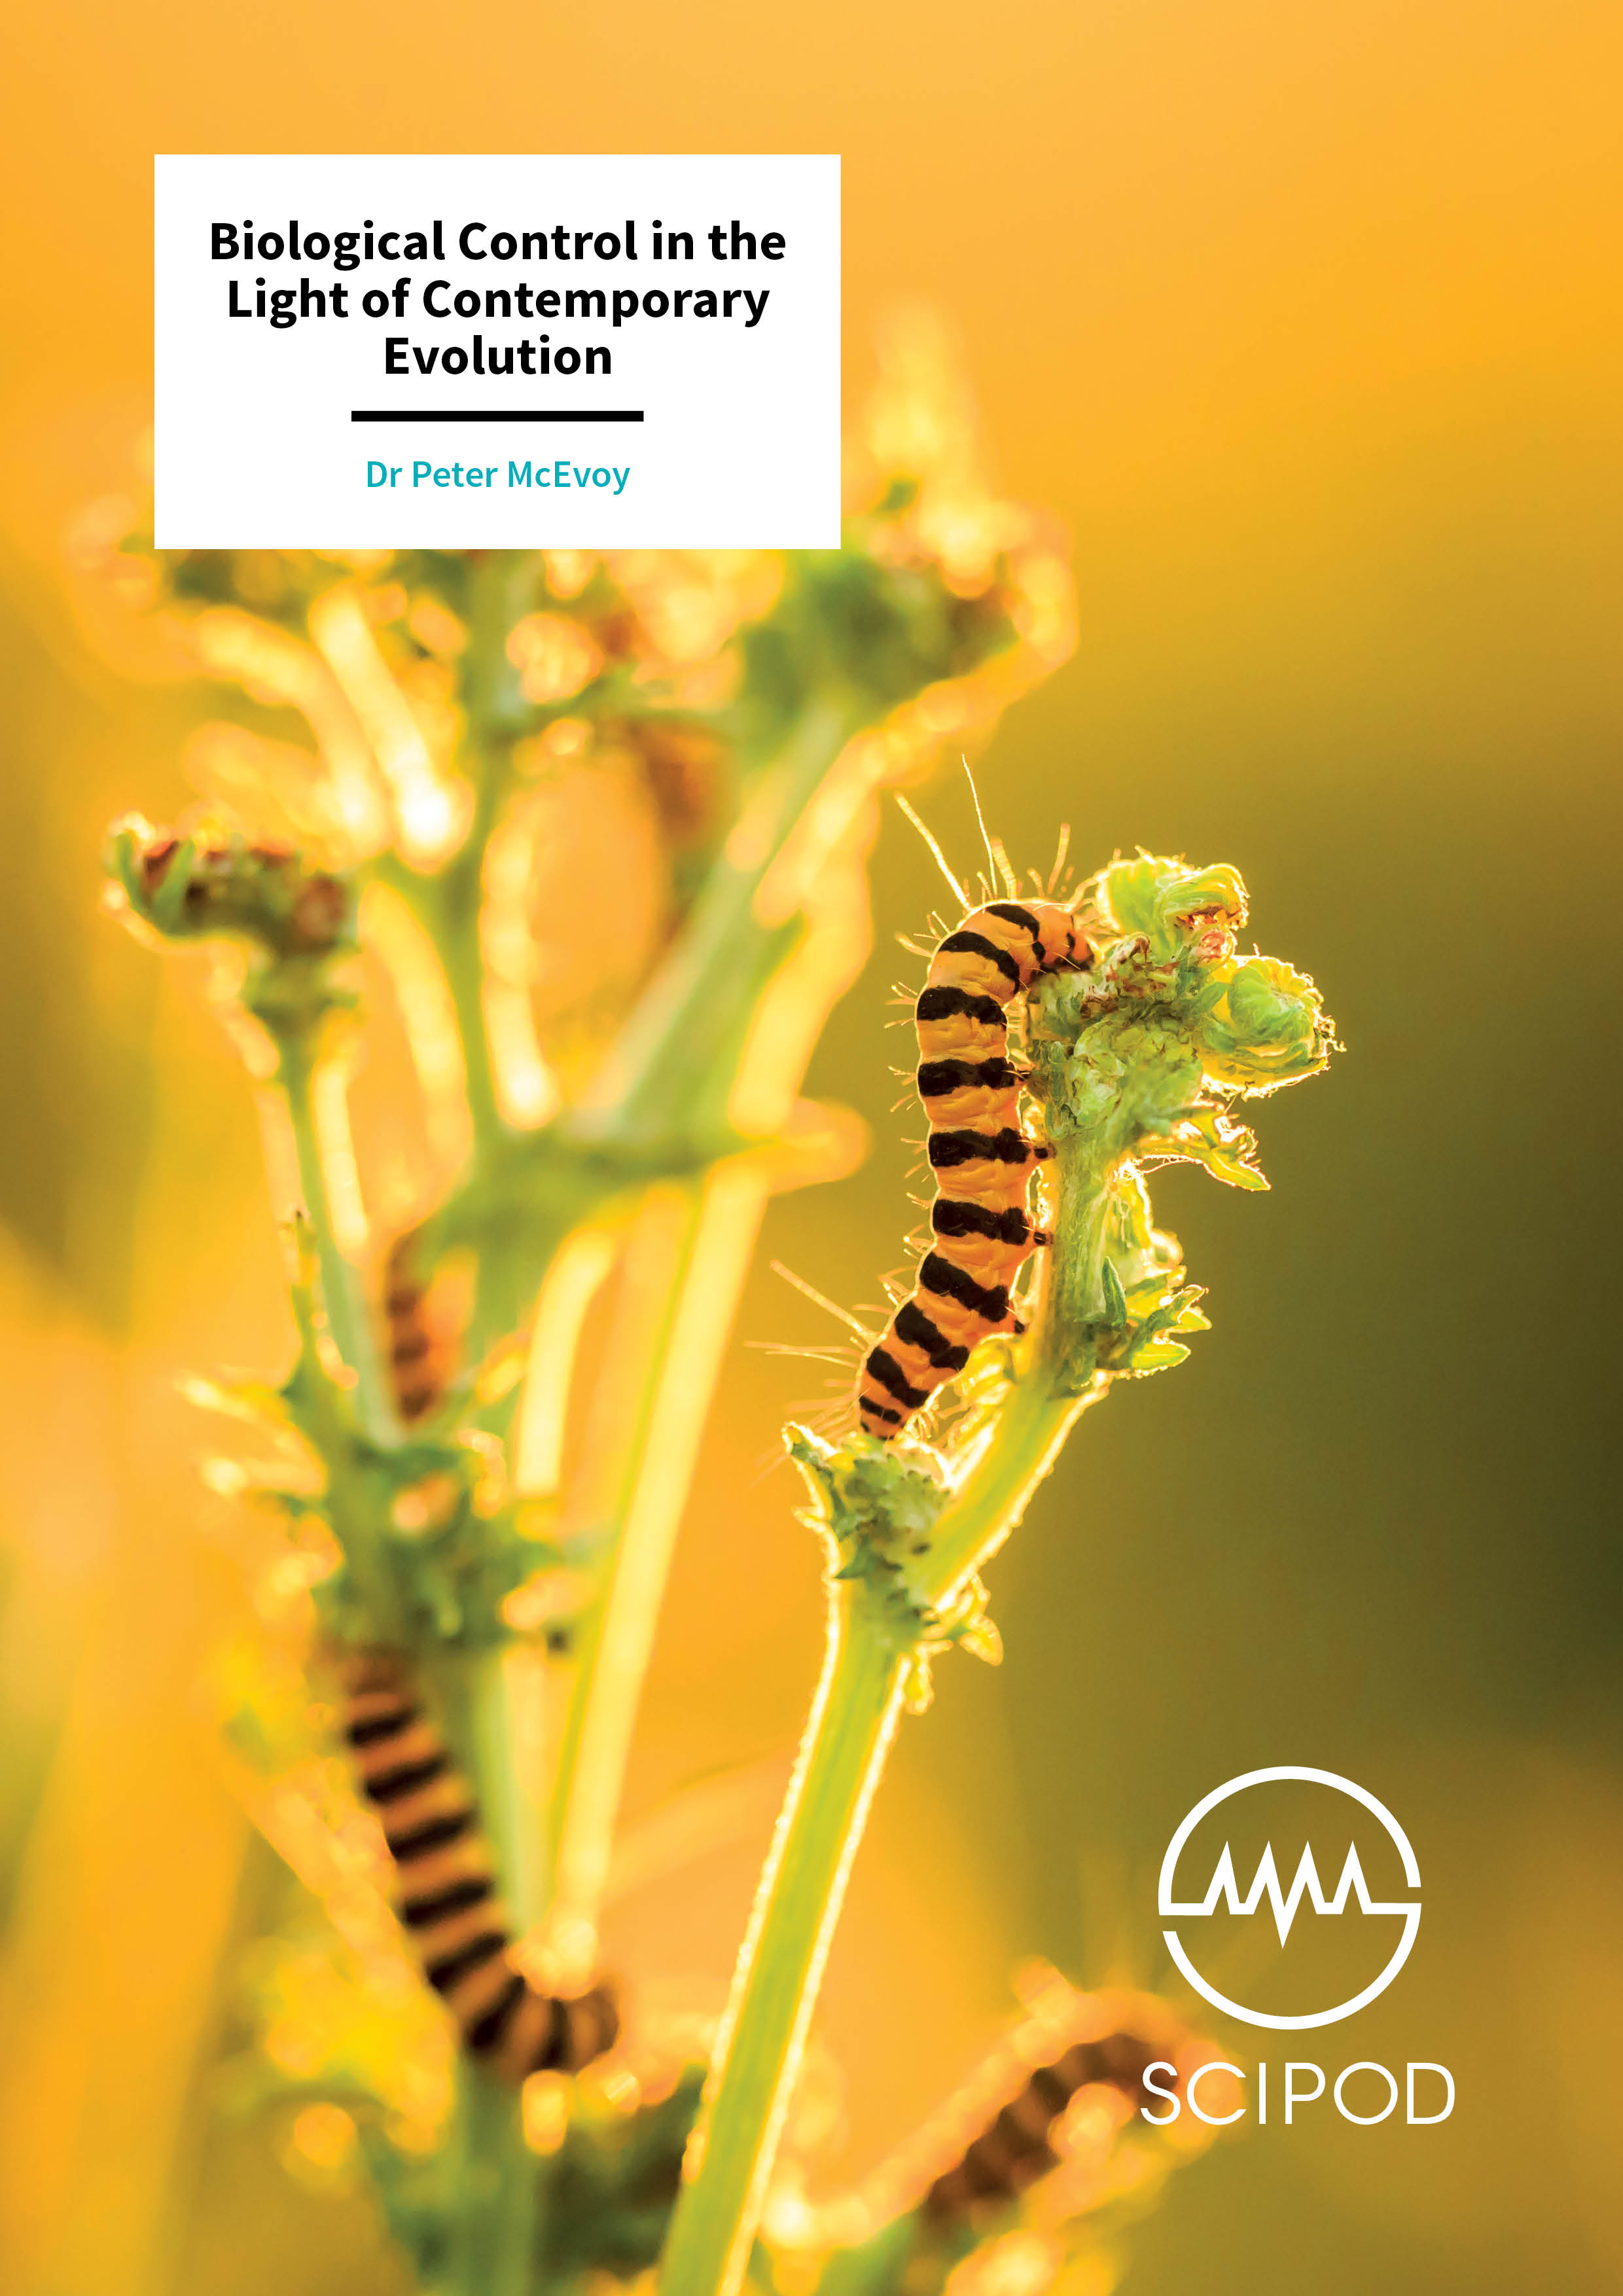 Biological Control In The Light Of Contemporary Evolution-Dr Peter McEvoy